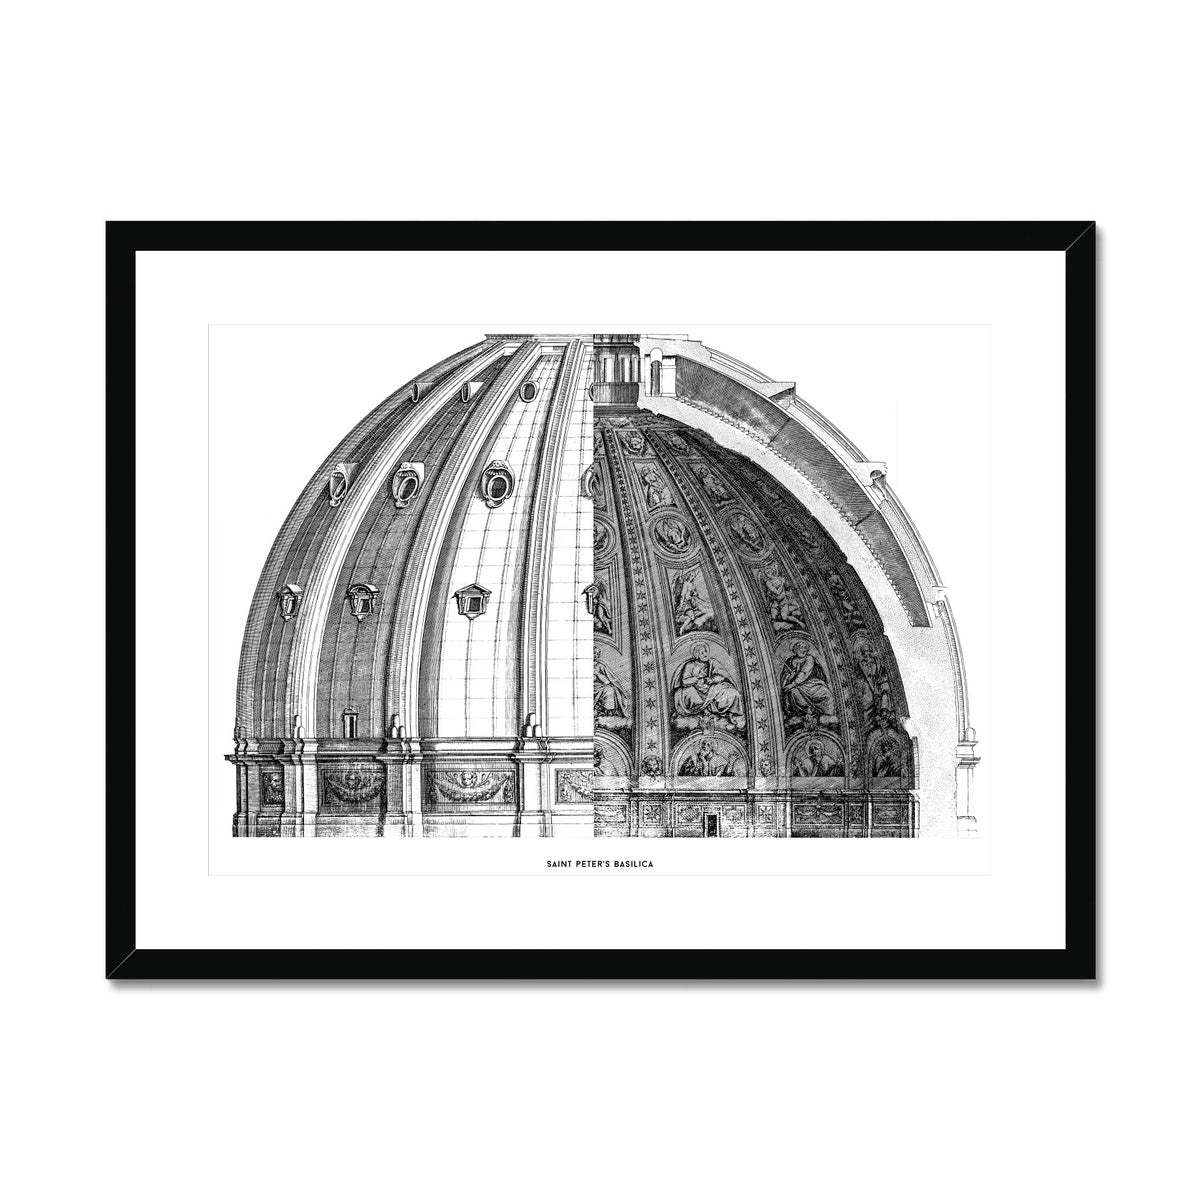 Saint Peter's Basilica - Dome Cross Section - White -  Framed & Mounted Print